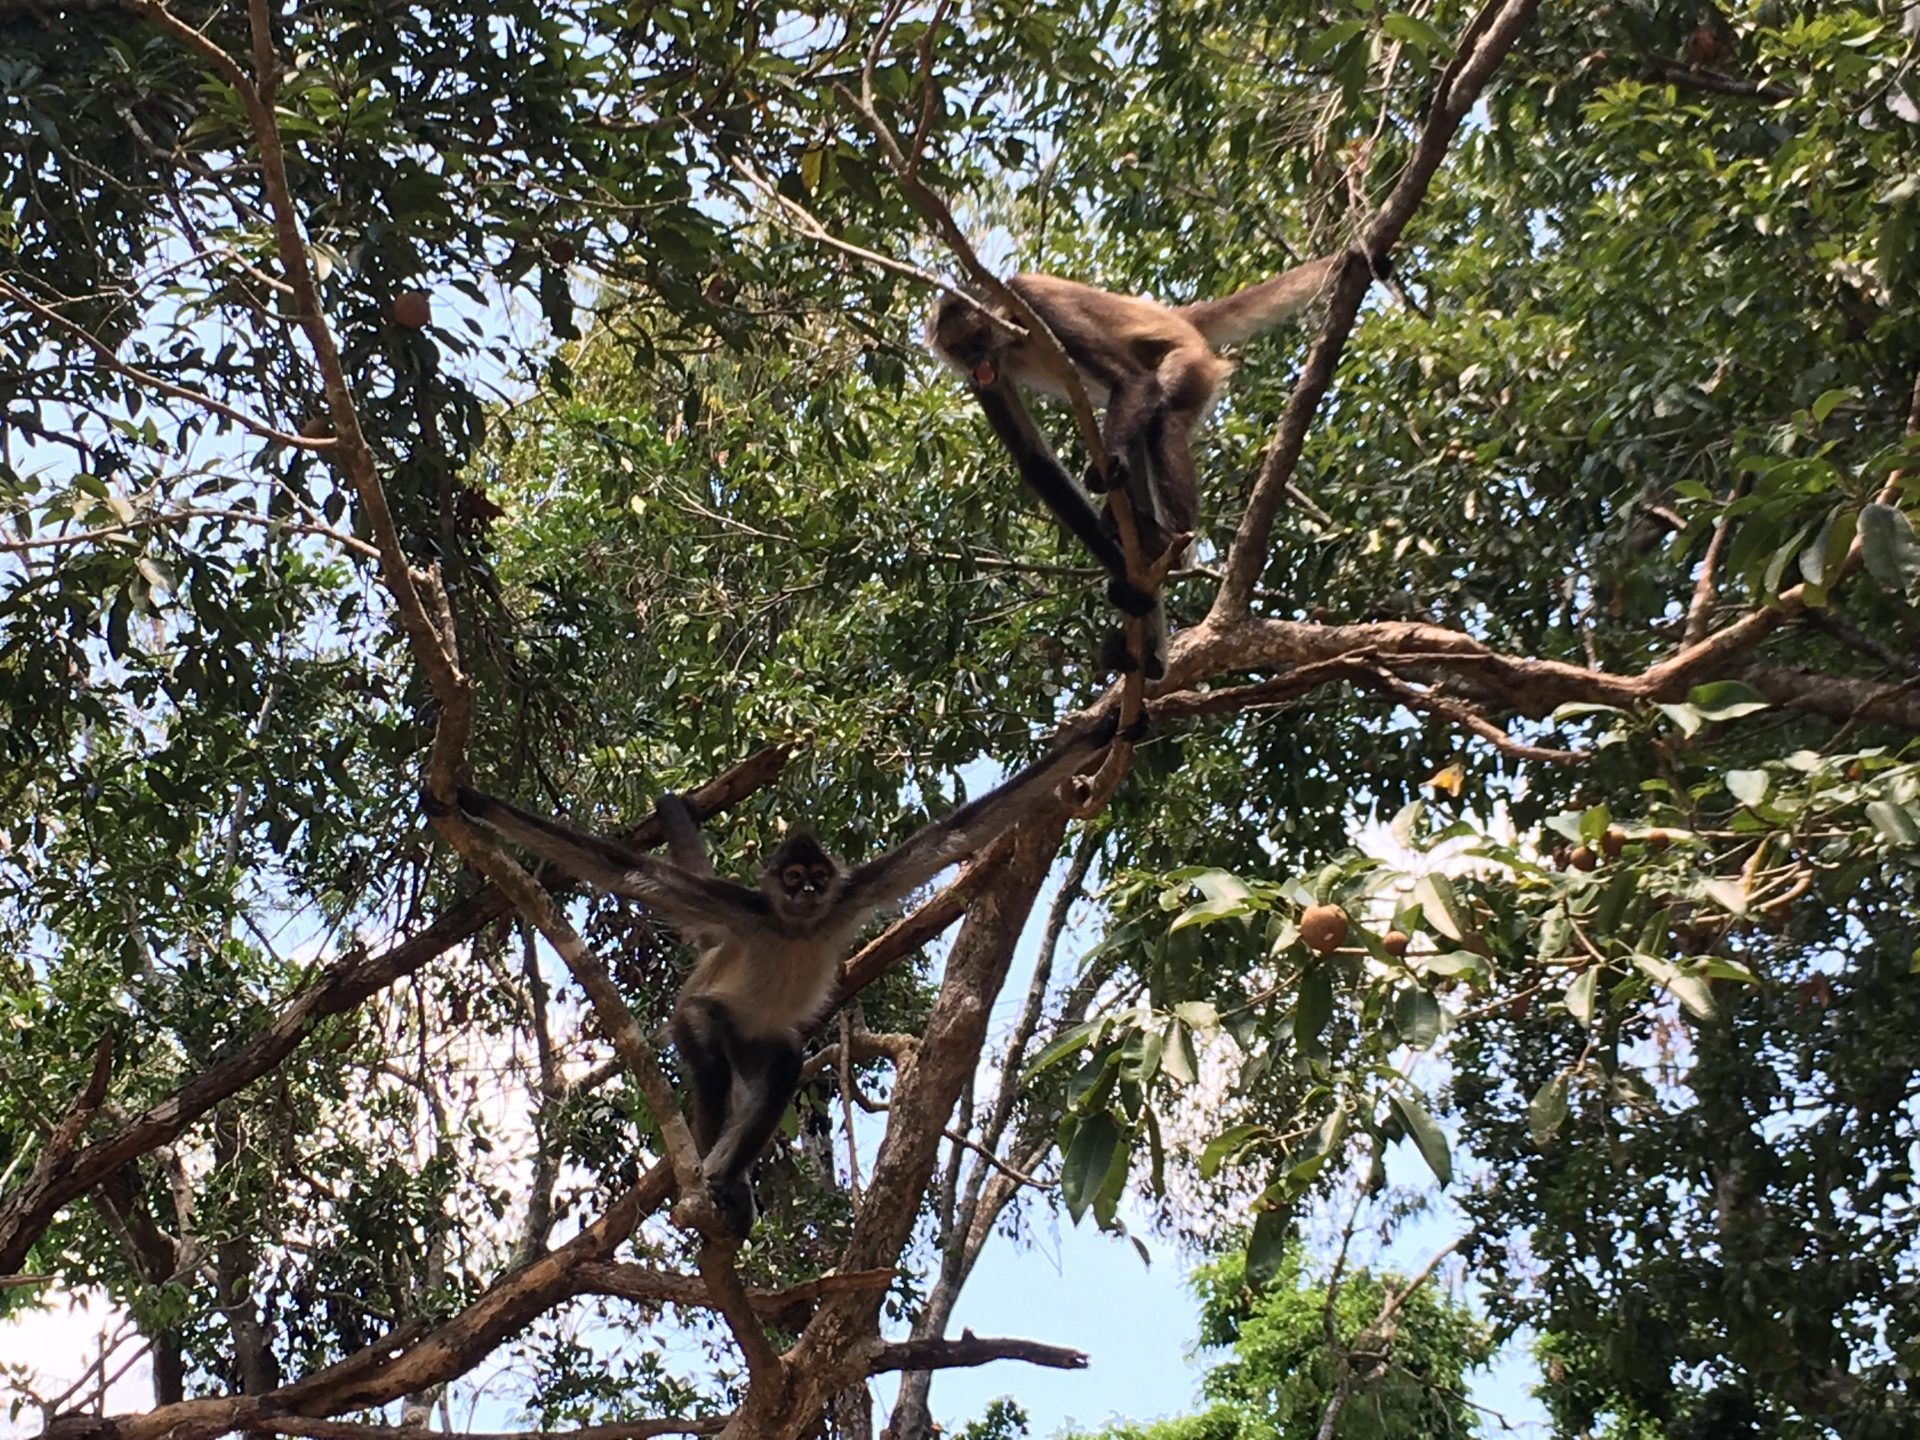 spider monkeys in Mexico